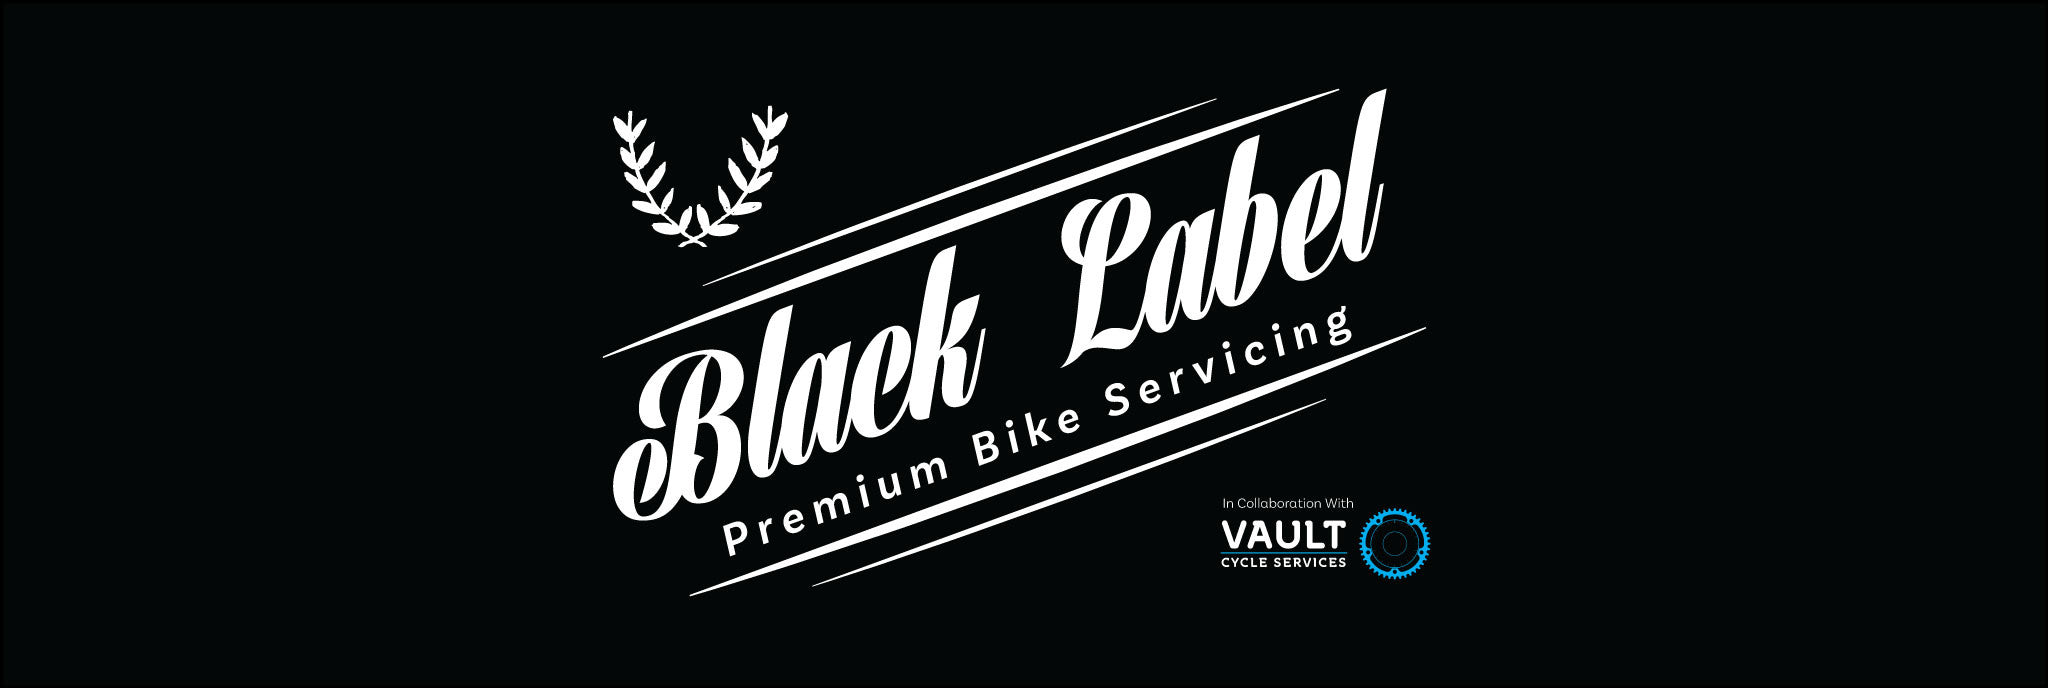 Black Label Bicycle Servicing